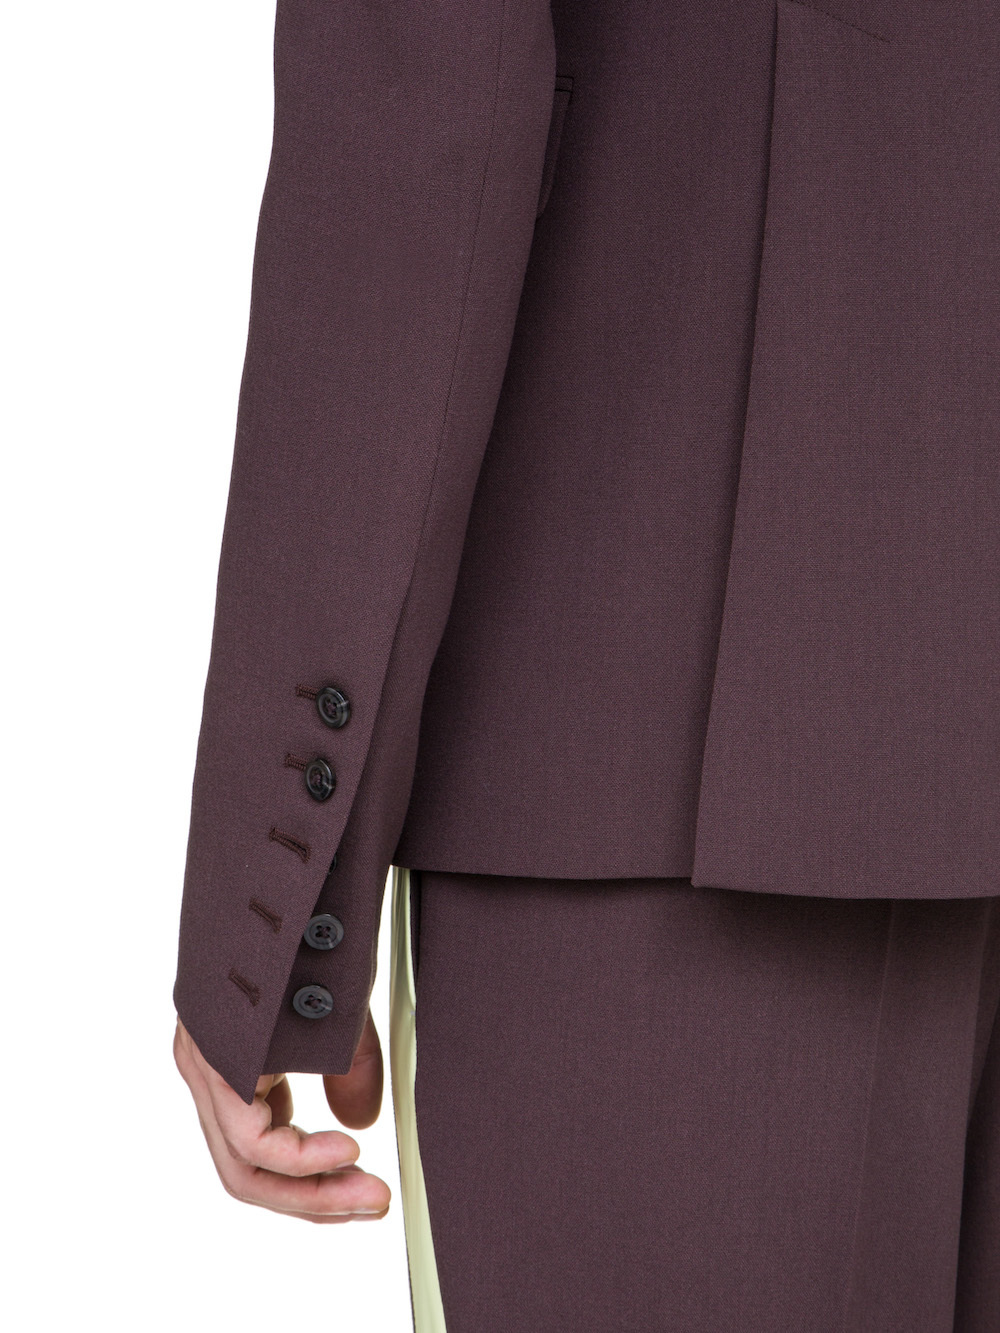 RICK OWENS 73CM BLAZER IN RAISIN PURPLE A YELLOW NYLON LAPEL COLLAR